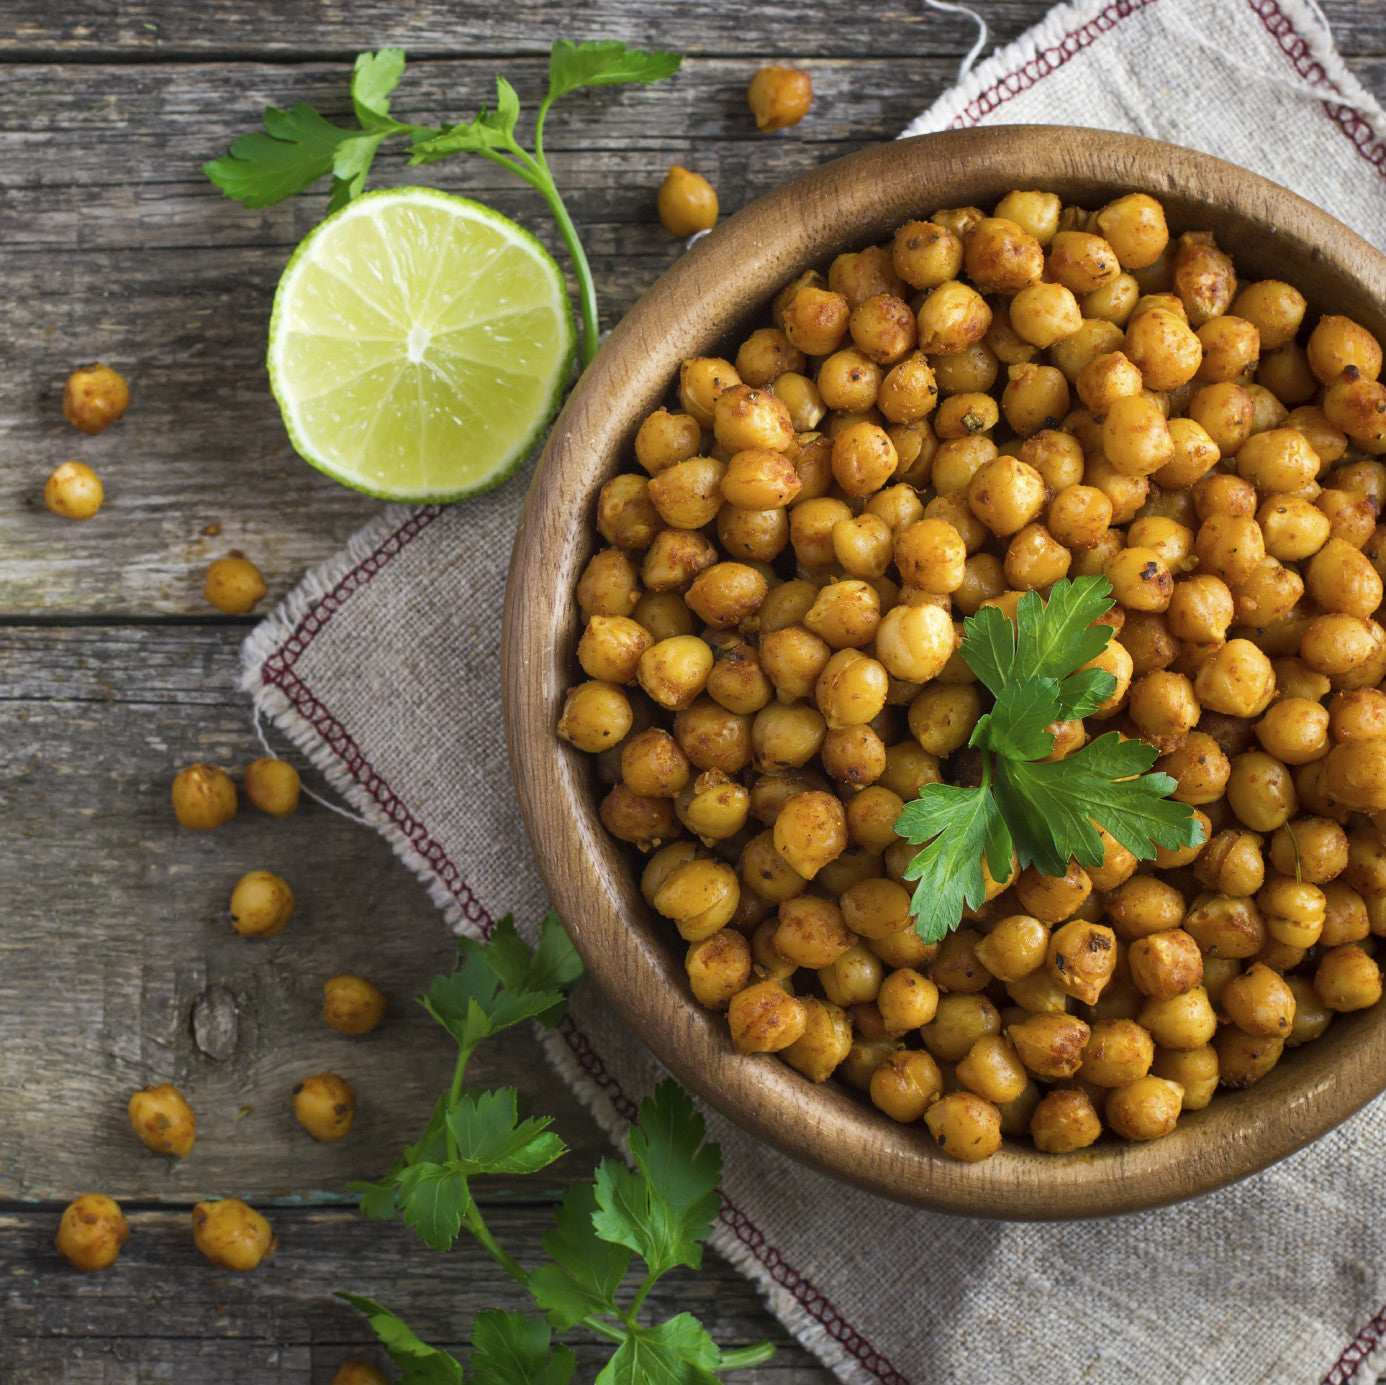 Roasted Chickpeas